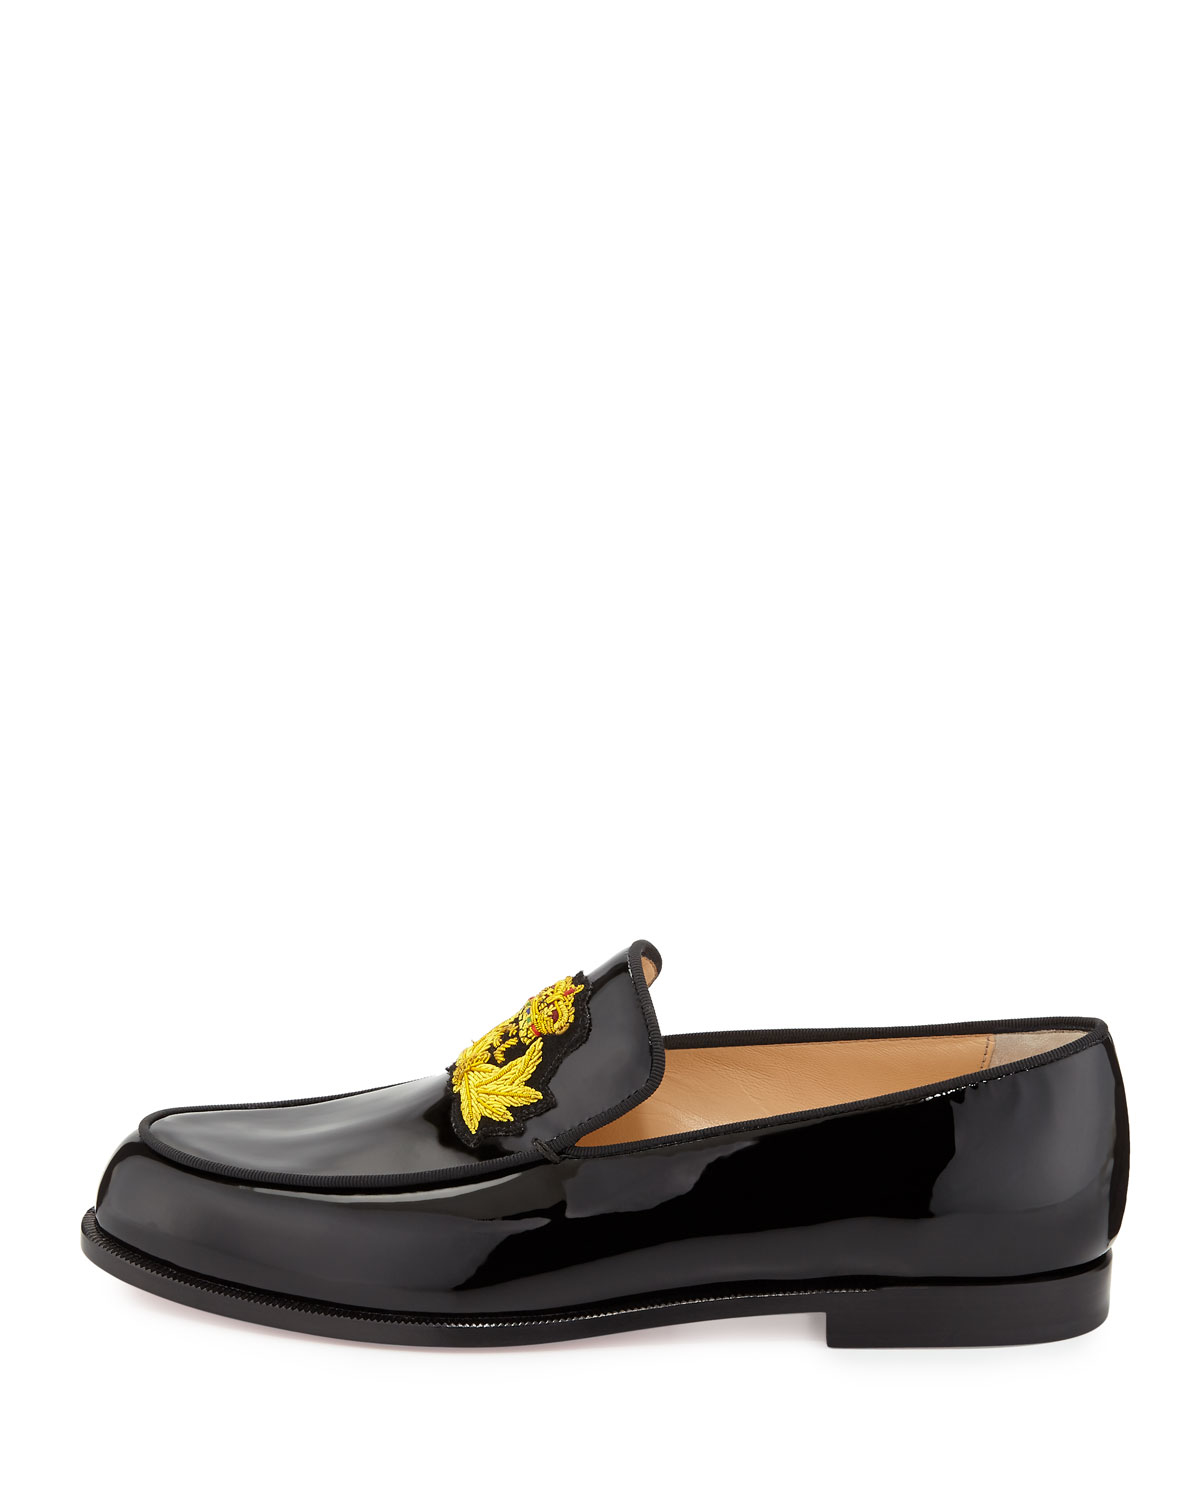 christian louboutin knock off - Christian louboutin Laperouza Patent Crest Loafer in Black for Men ...